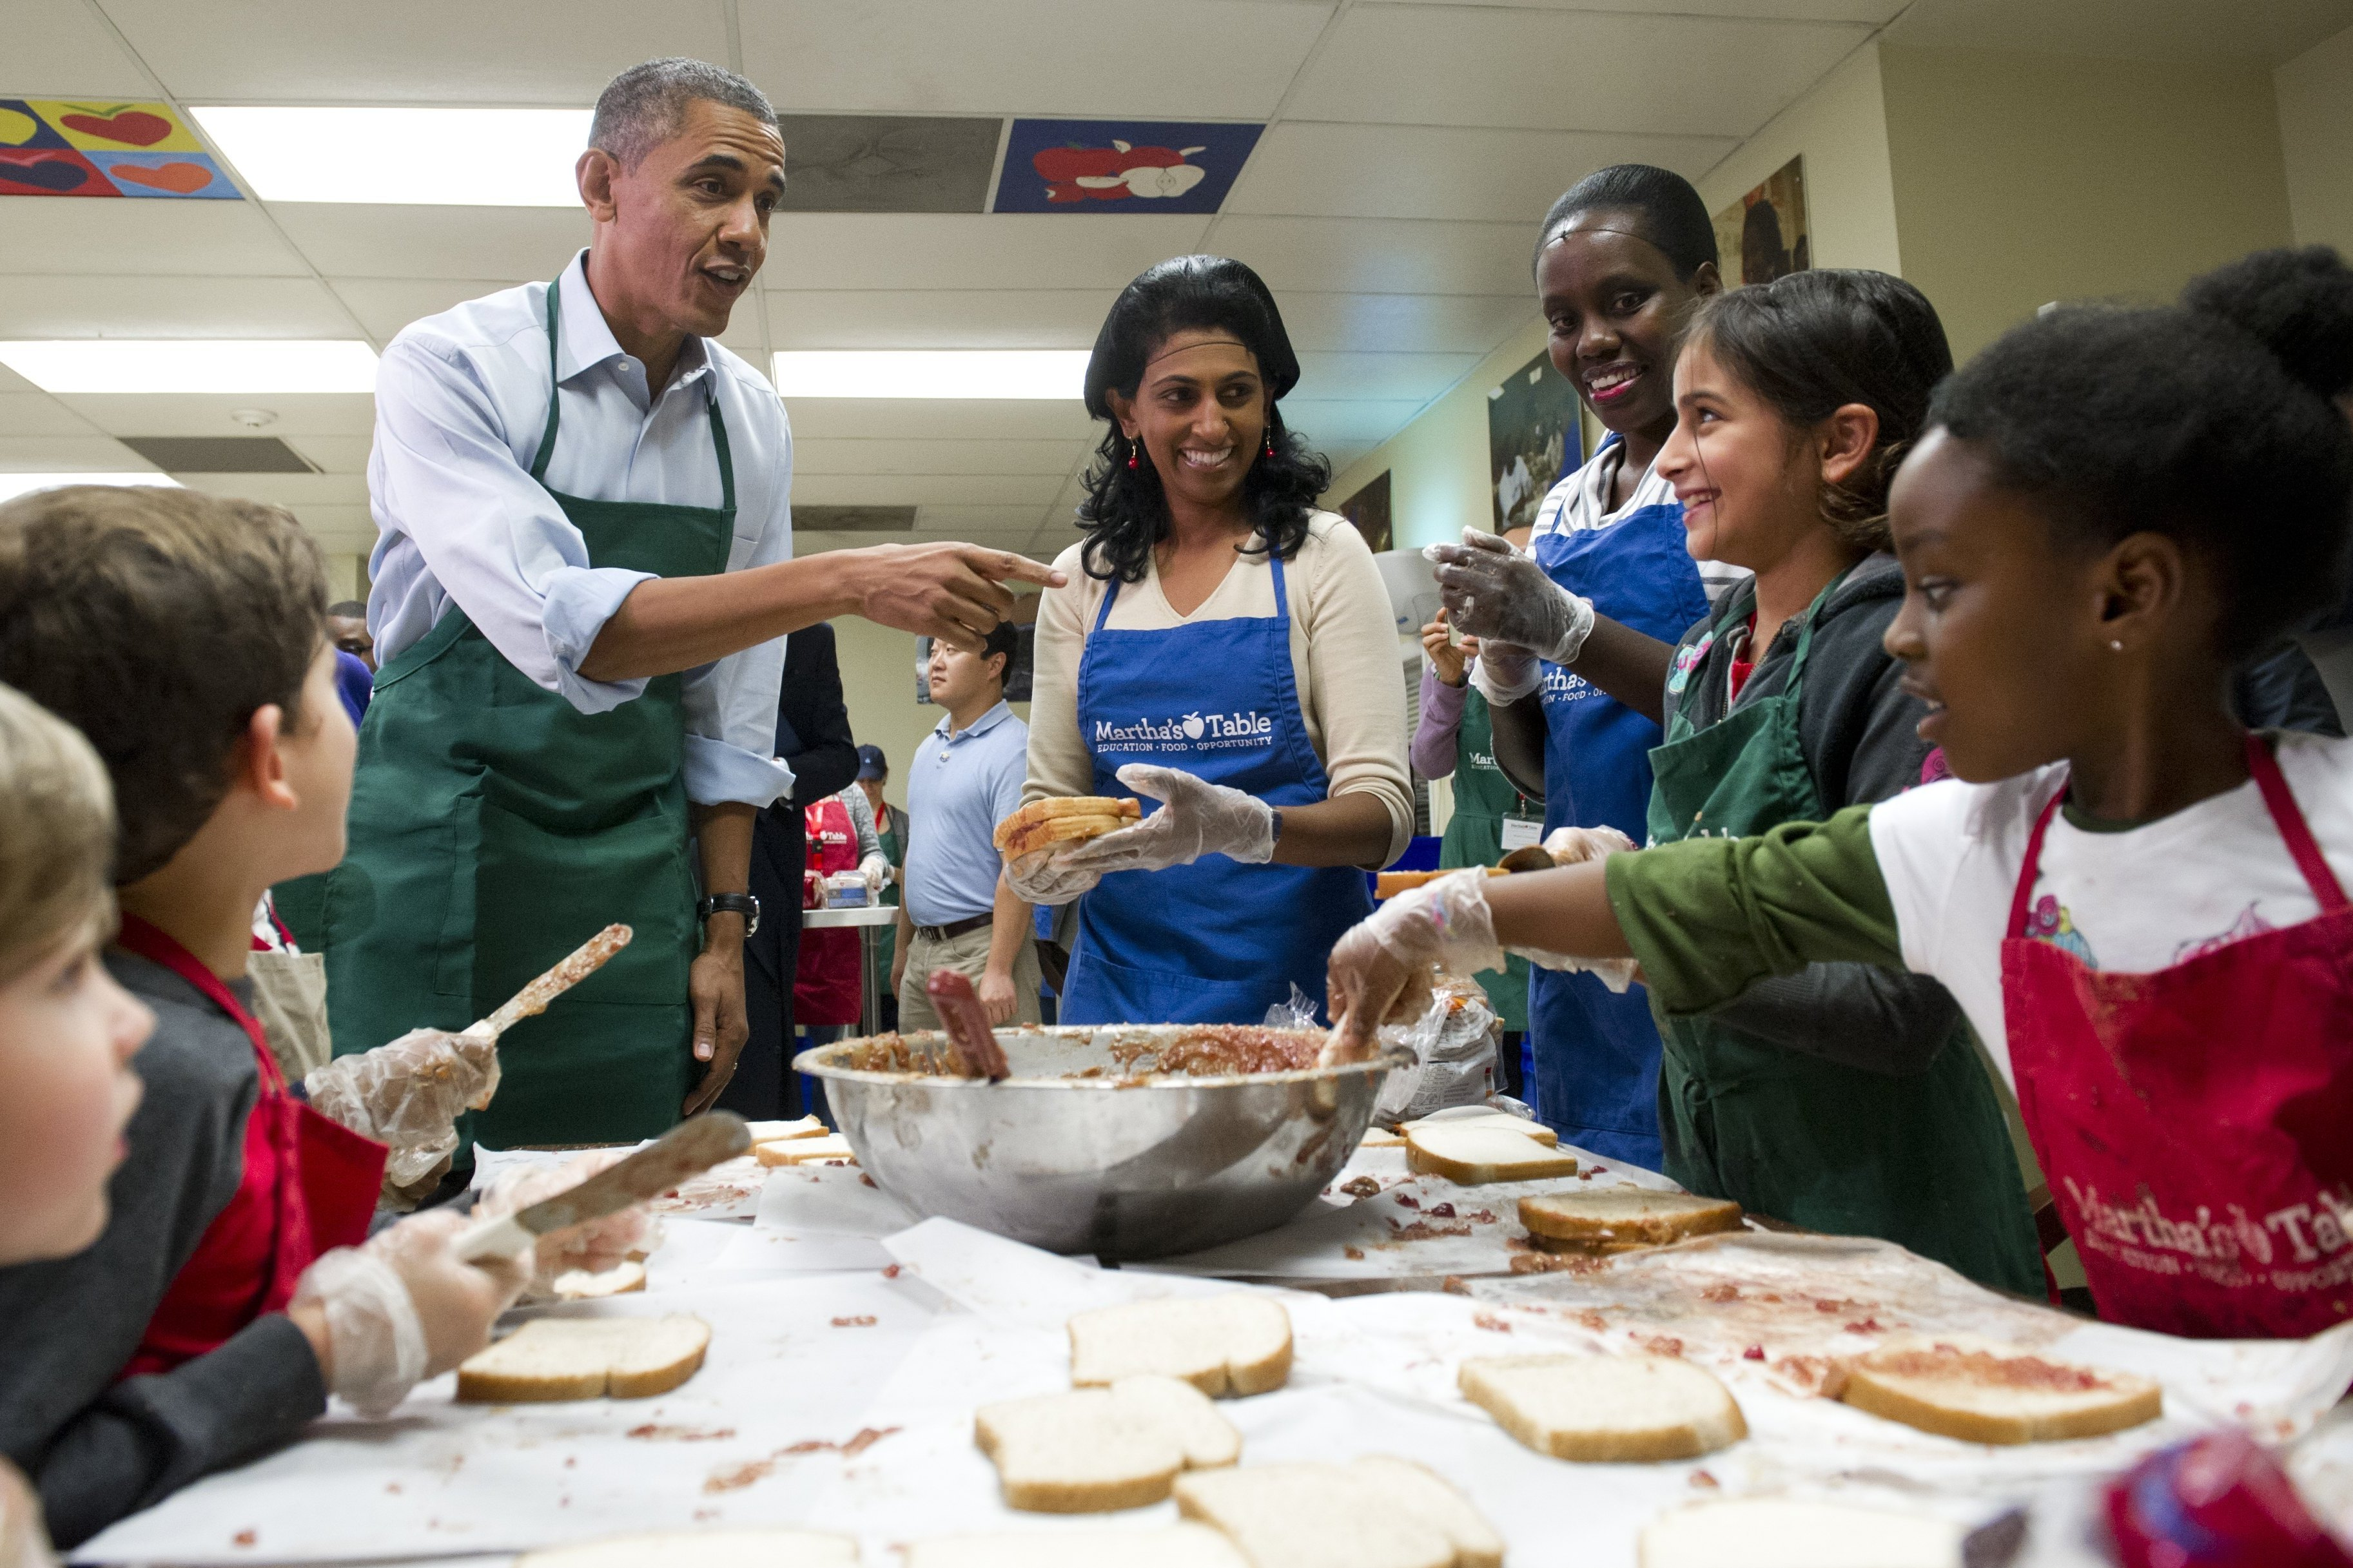 President Obama talks with children and adult volunteers at Martha's Table in Washington, D.C., on Monday. The nonprofit organization helps low-income and homeless families. Many of the volunteers over the past couple weeks were furloughed federal workers.